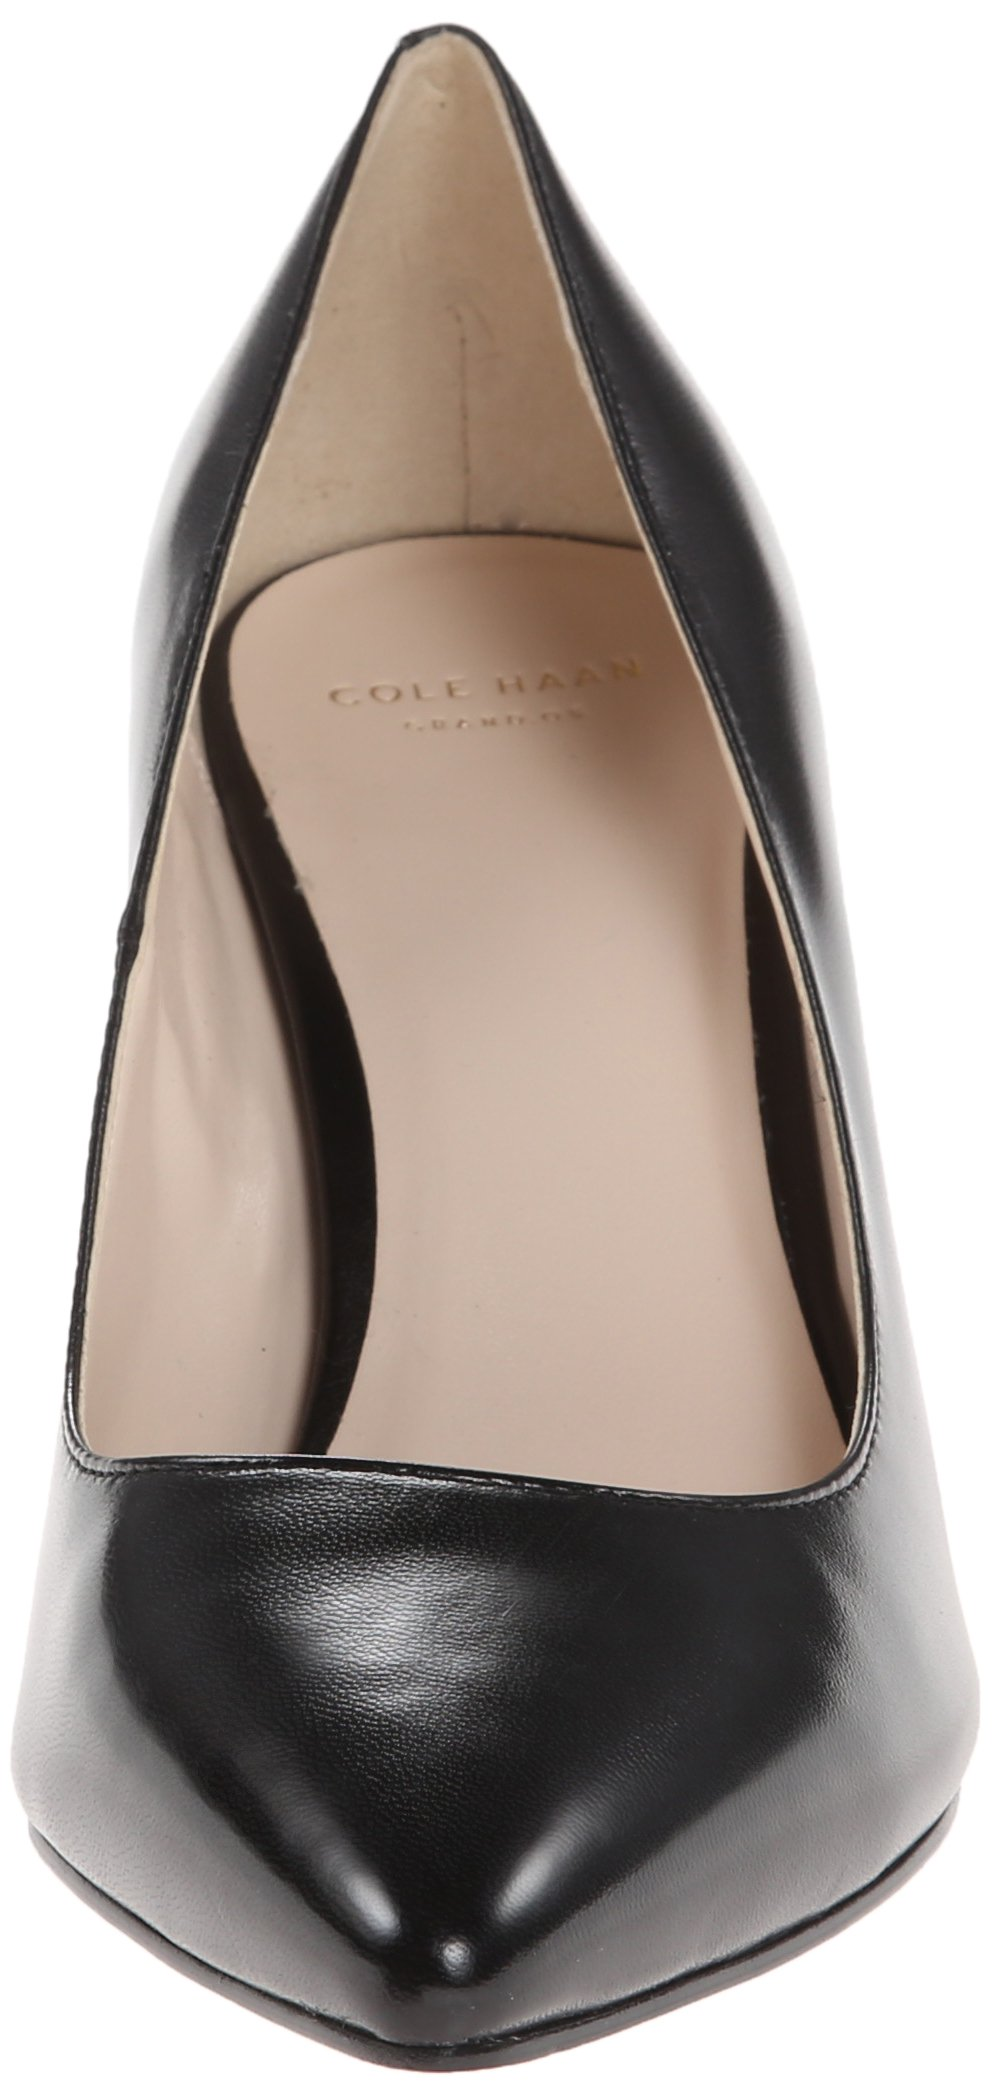 Cole Haan Women's Juliana Pump 75,Black Leather,8.5  B US by Cole Haan (Image #4)